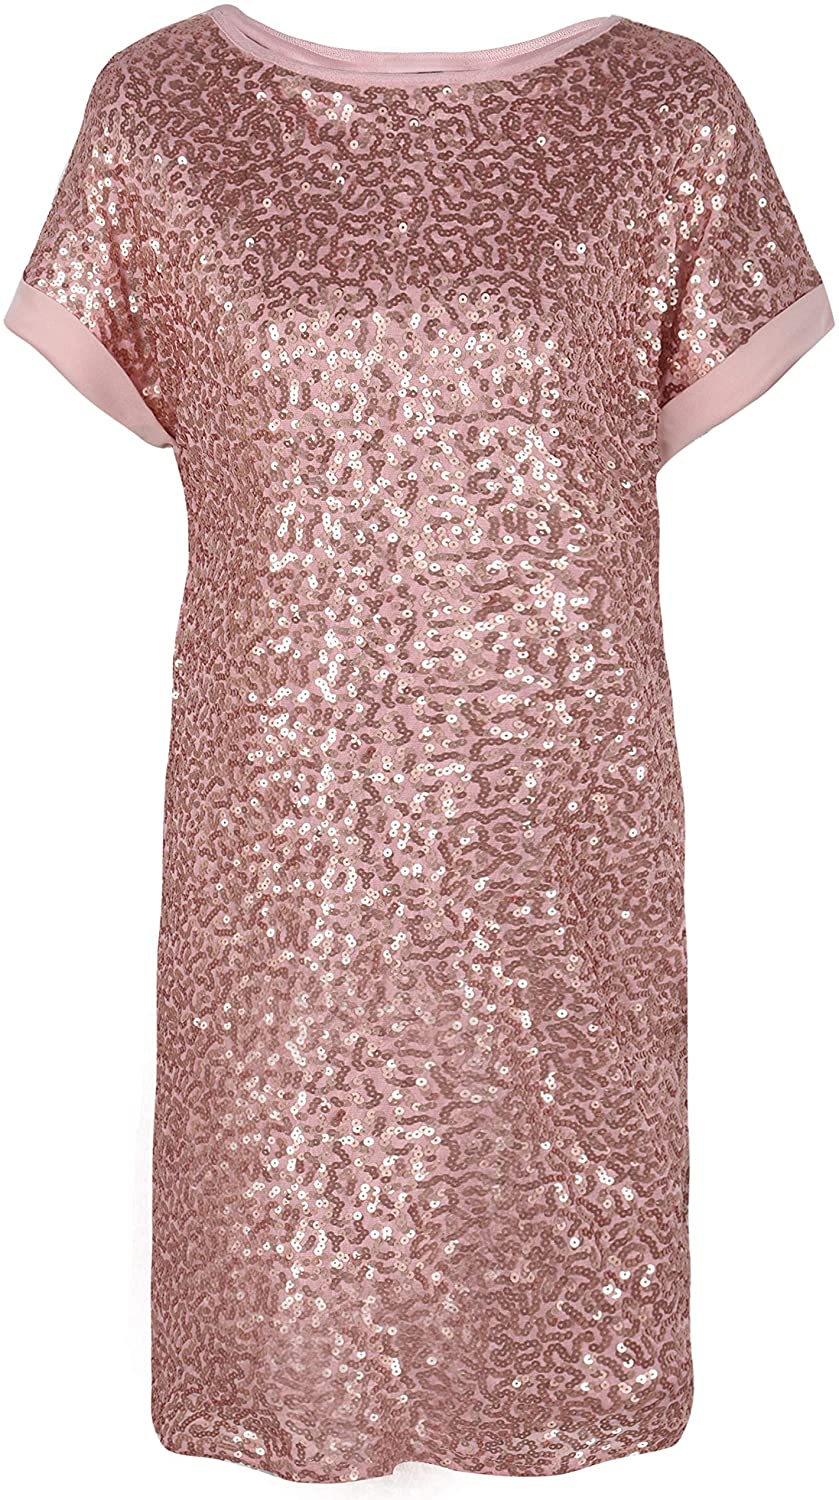 PrettyGuide Women's Sequin Cocktail Dress Loose Glitter Shift Party Tunic Dress